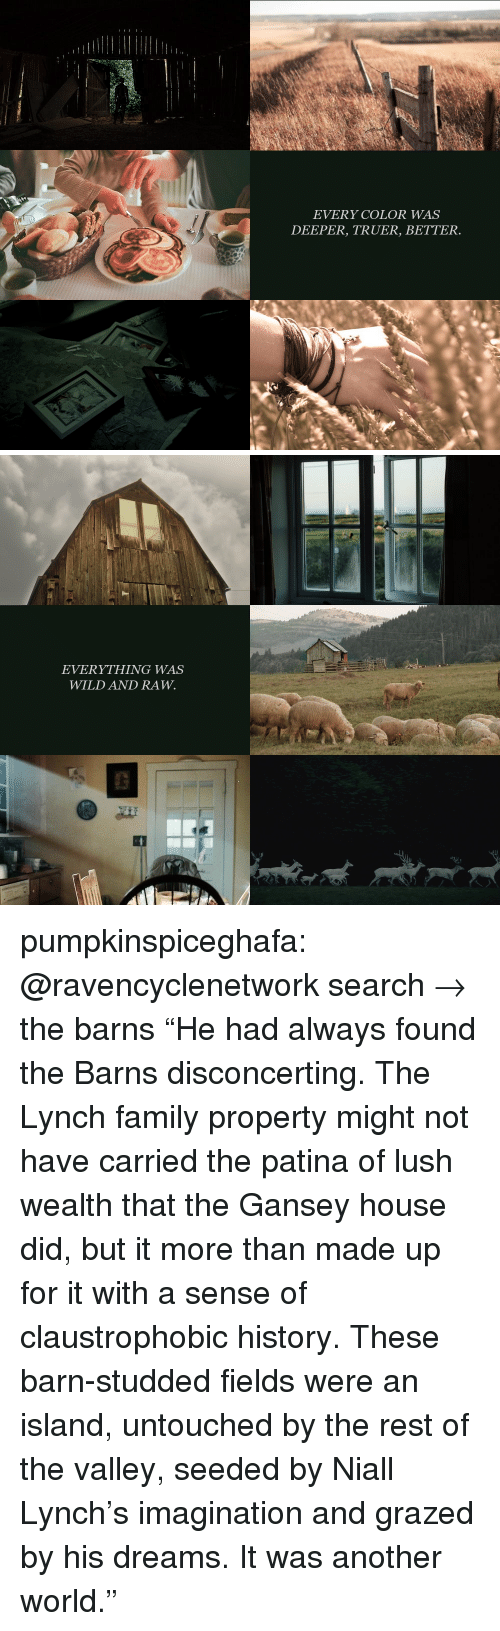 """Lush: EVERY COLOR WAS  DEEPER, TRUER, BETTER.   EVERYTHING WAS  WILD AND RAW. pumpkinspiceghafa: @ravencyclenetwork search→ the barns """"He had always found the Barns disconcerting. The Lynch family property might not have carried the patina of lush wealth that the Gansey house did, but it more than made up for it with a sense of claustrophobic history. These barn-studded fields were an island, untouched by the rest of the valley, seeded by Niall Lynch's imagination and grazed by his dreams. It was another world."""""""